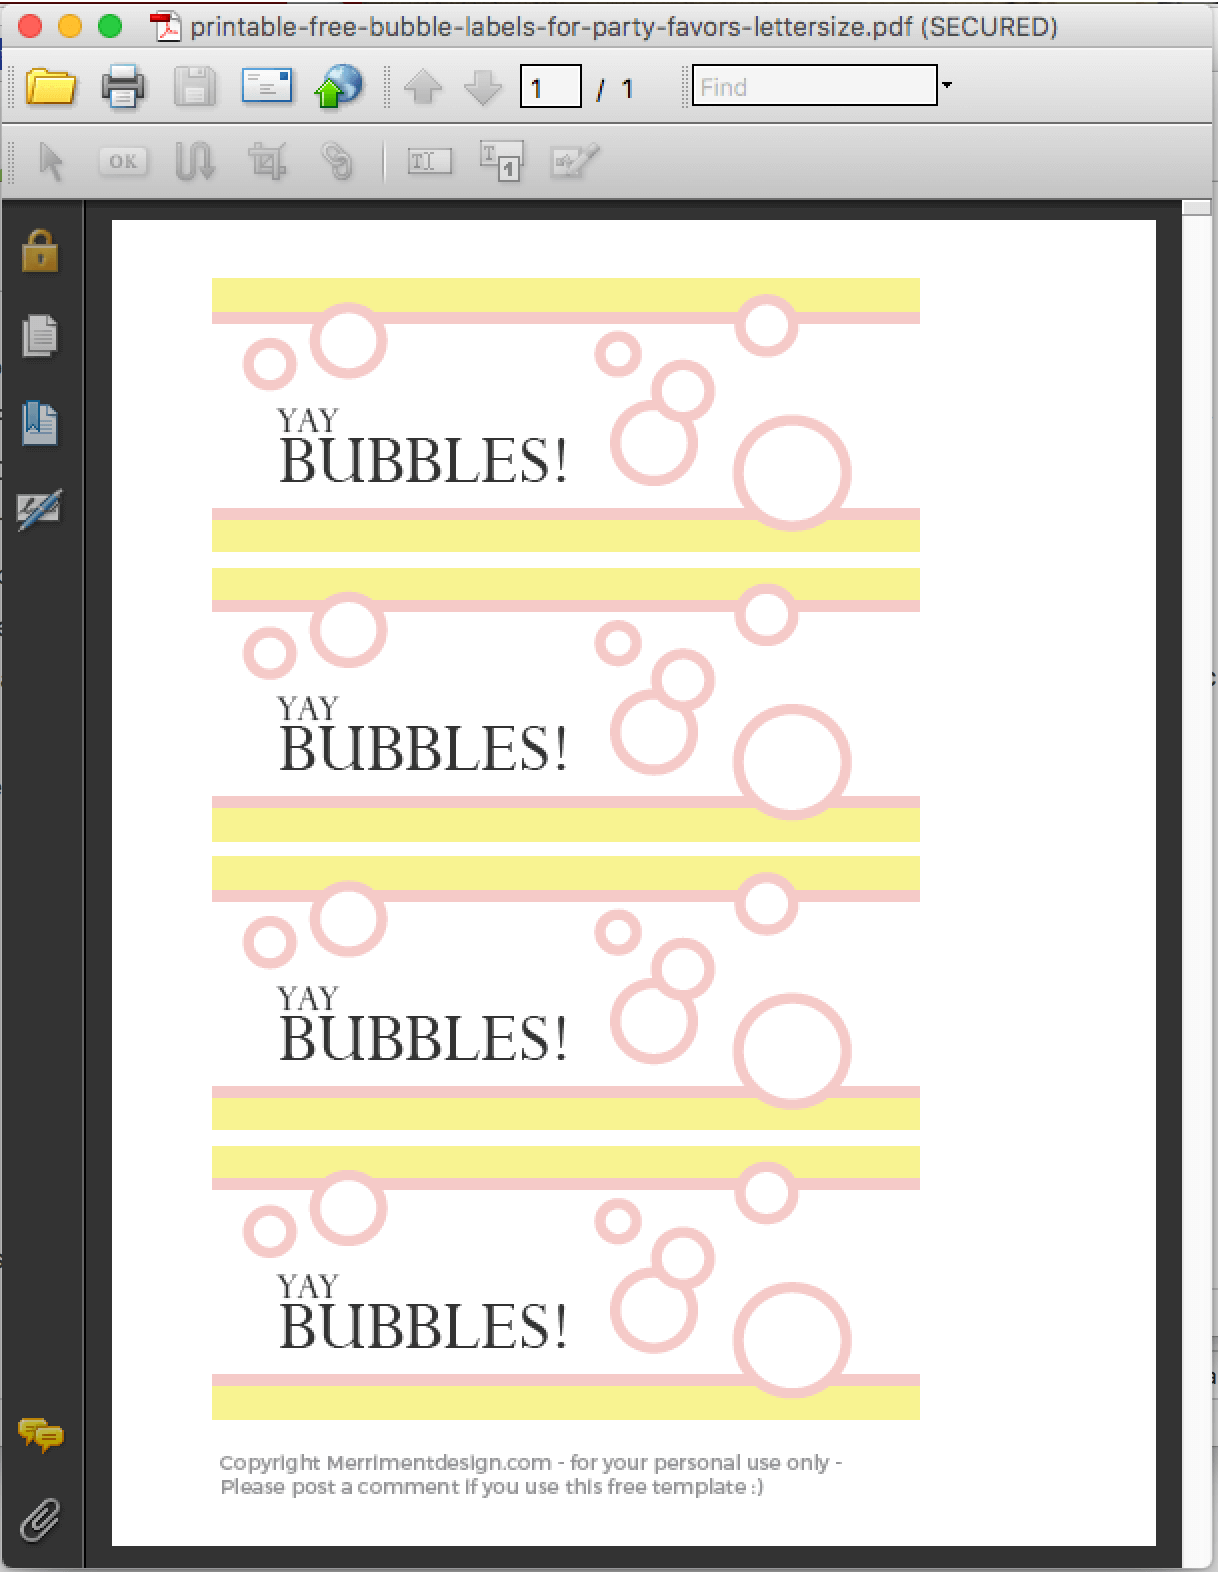 Printable Free Bubble Labels For Party Favors Merriment